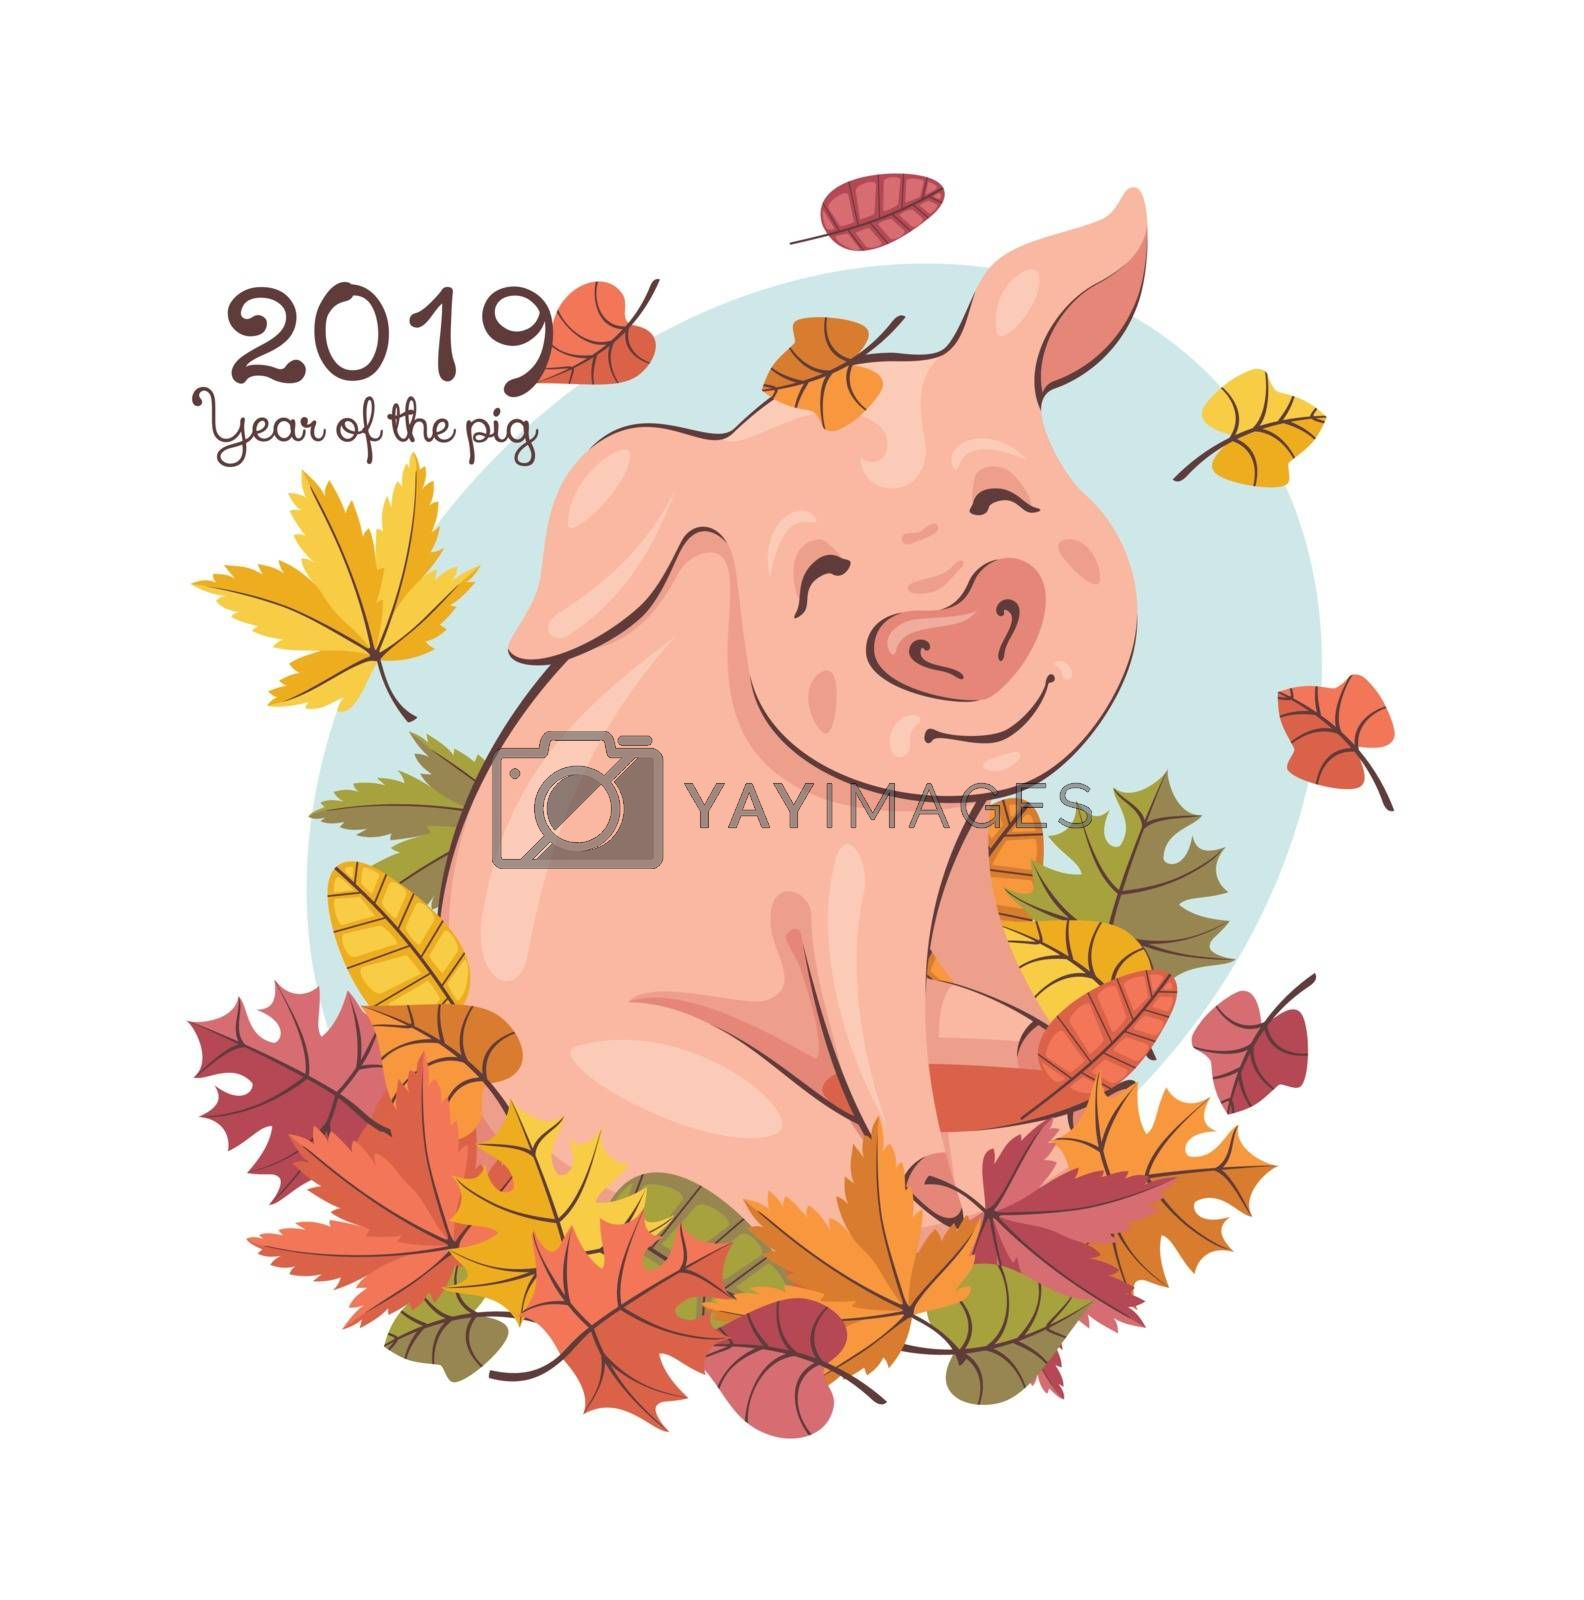 2019 New Year greeting card with a happy cute pig playing with the falling leaves. Vector illustration.